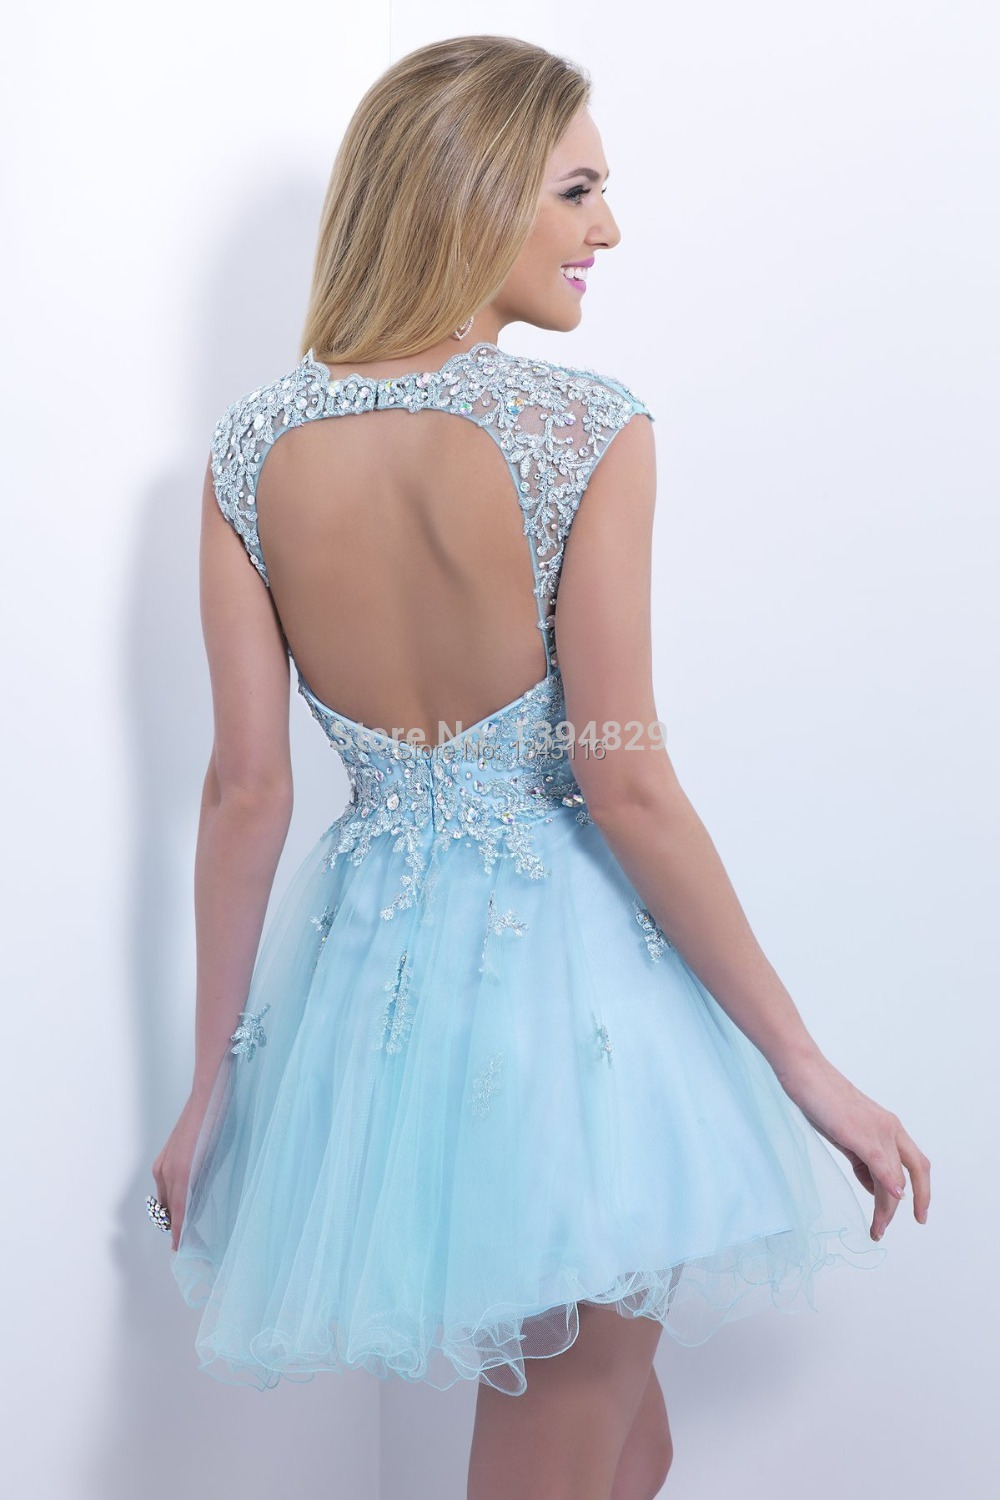 21998ad0d8 2016 Fashion Light Sky Blue Short Prom Dresses Beach Sheer Cap Sleeves  Backless Homecoming Party Gowns Vestidos De Noche Cortos-in Prom Dresses  from ...